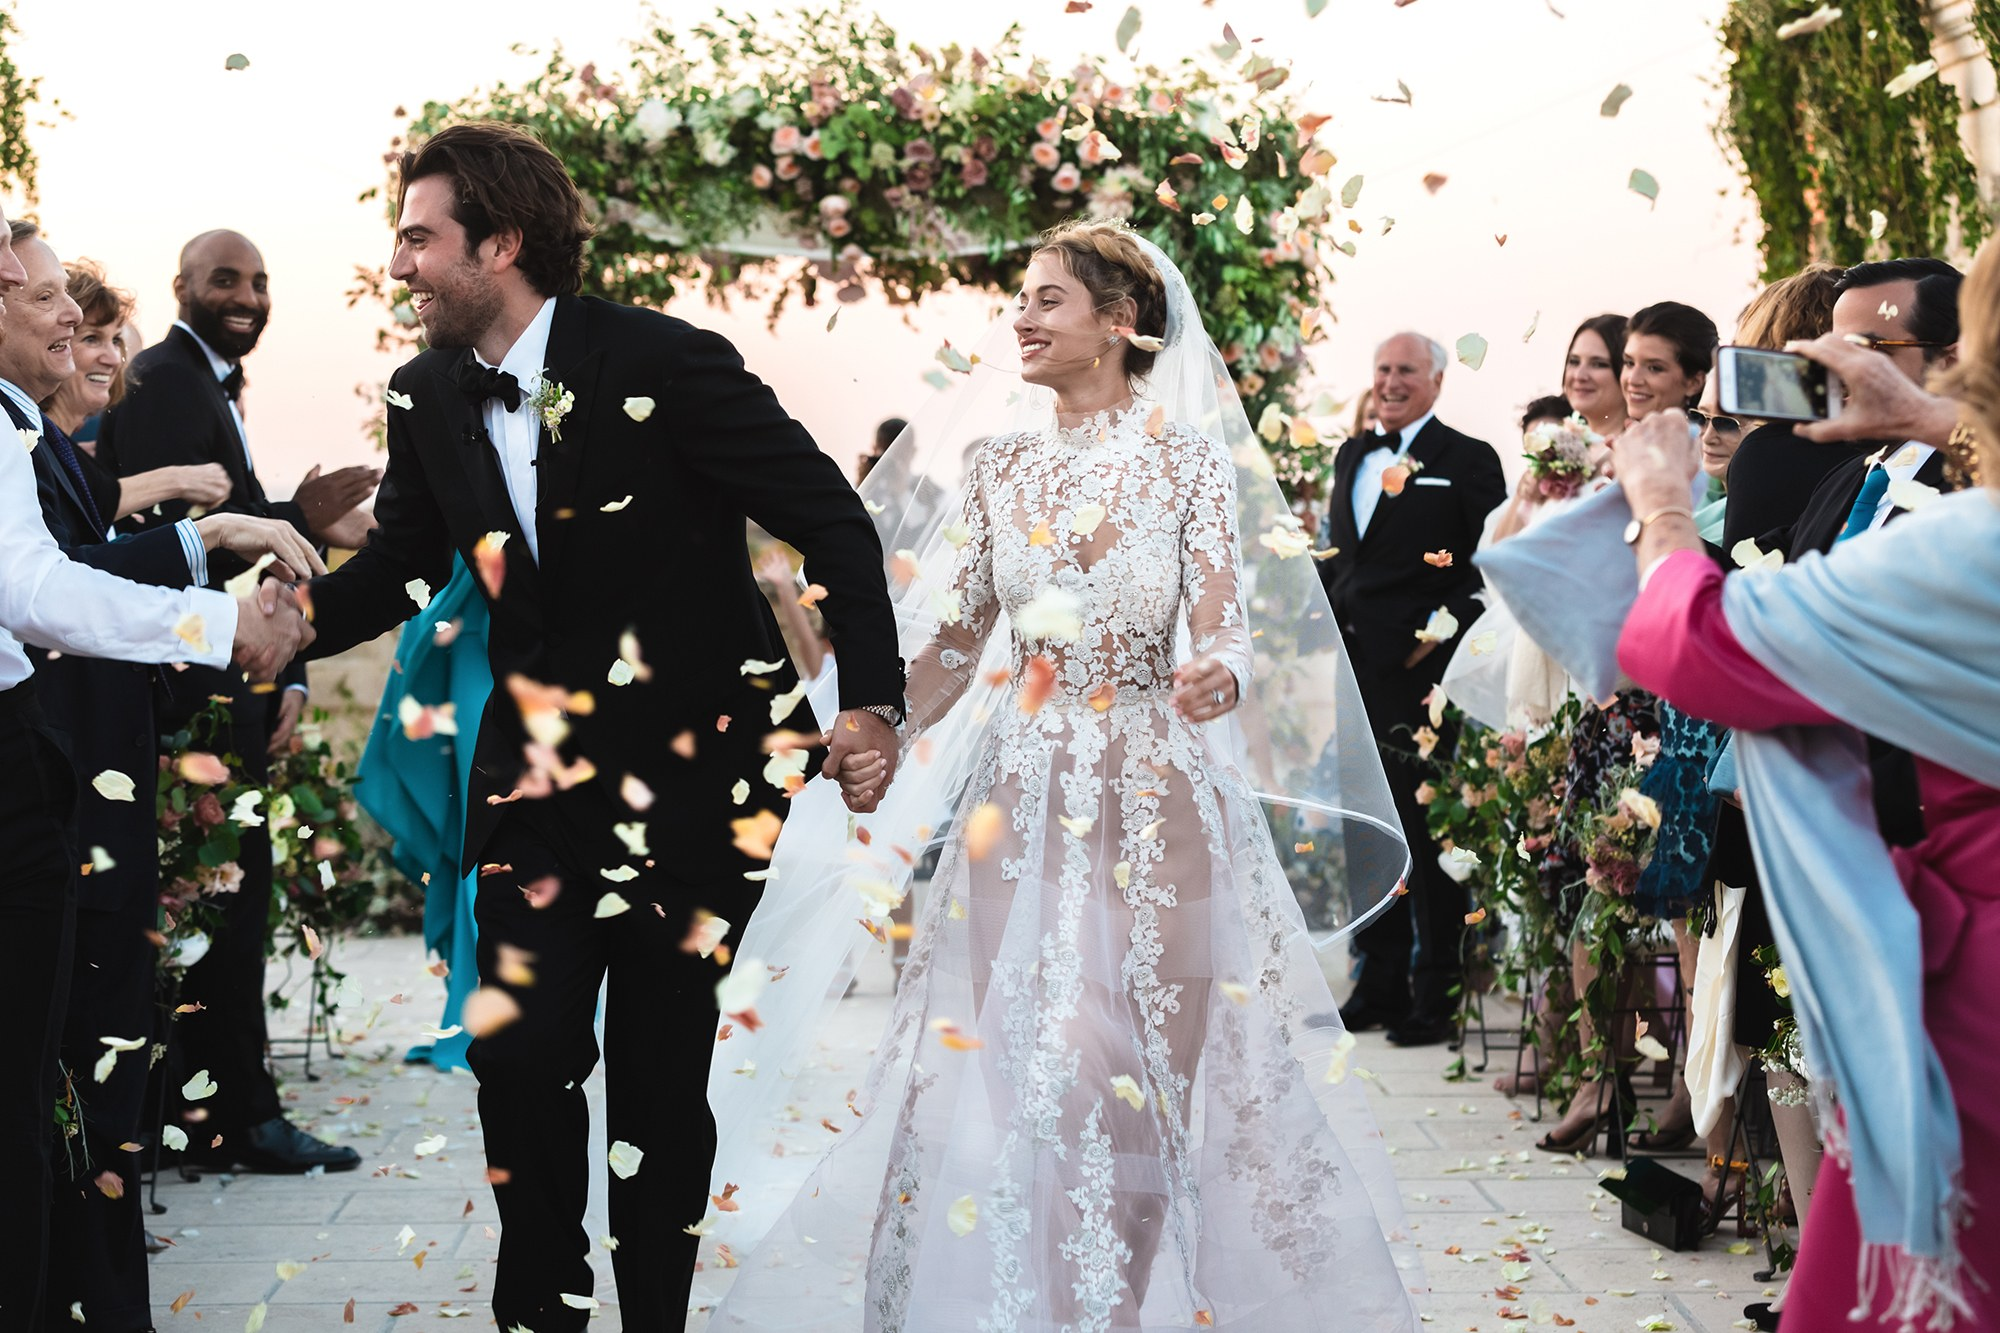 Smarter Weddings: Here's Why Crowdfunding Your Wedding is a Smart Move